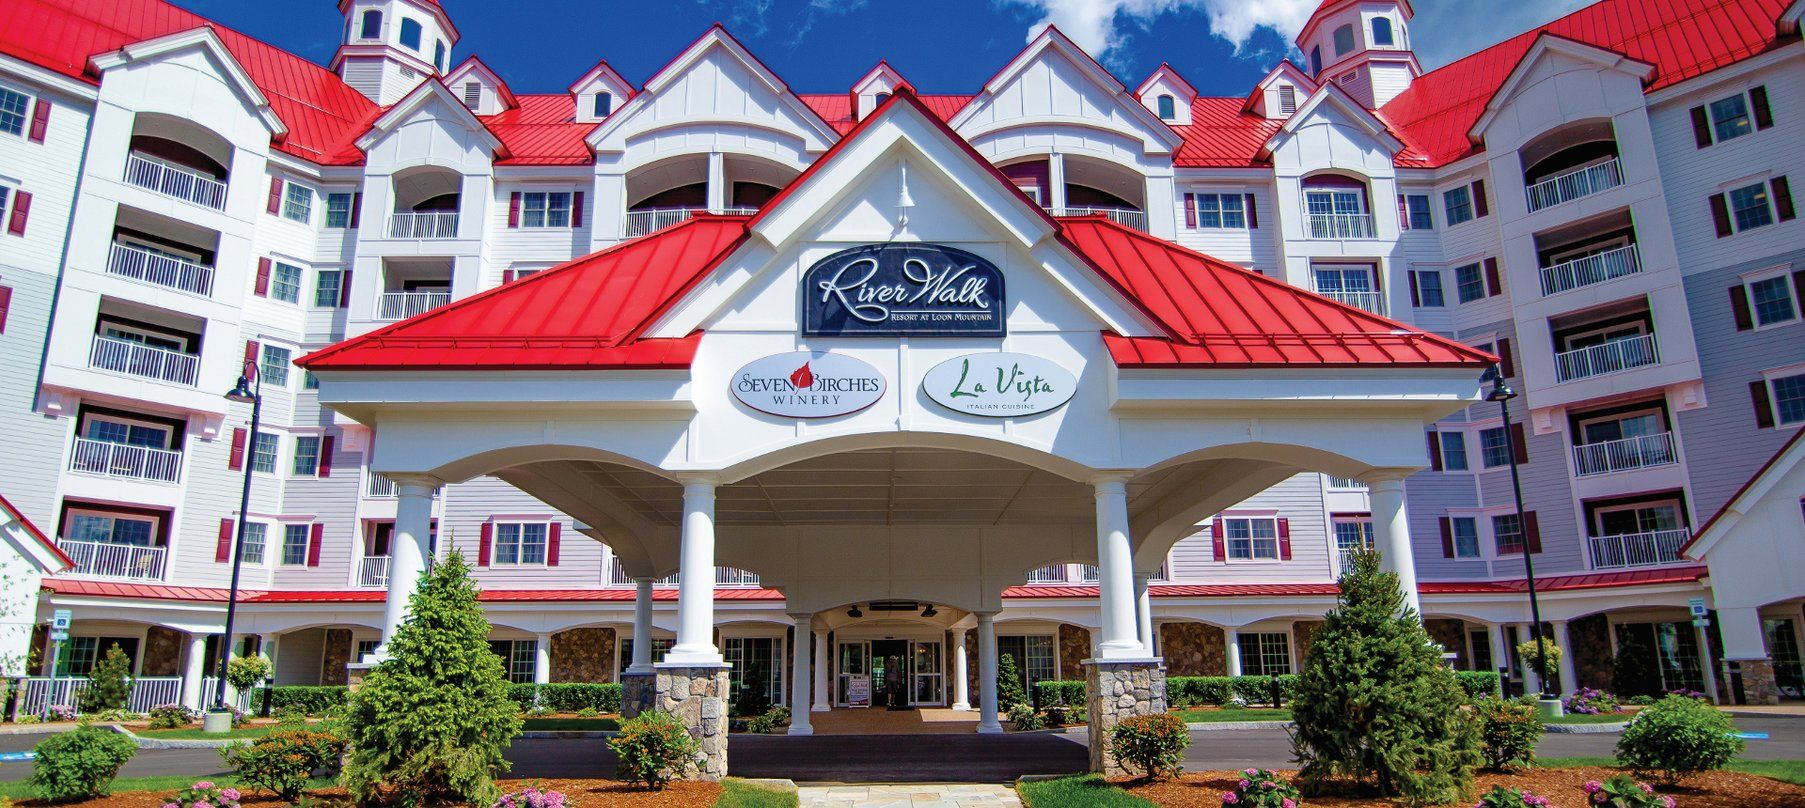 hotels com booking nh inn us hotel days lincoln route